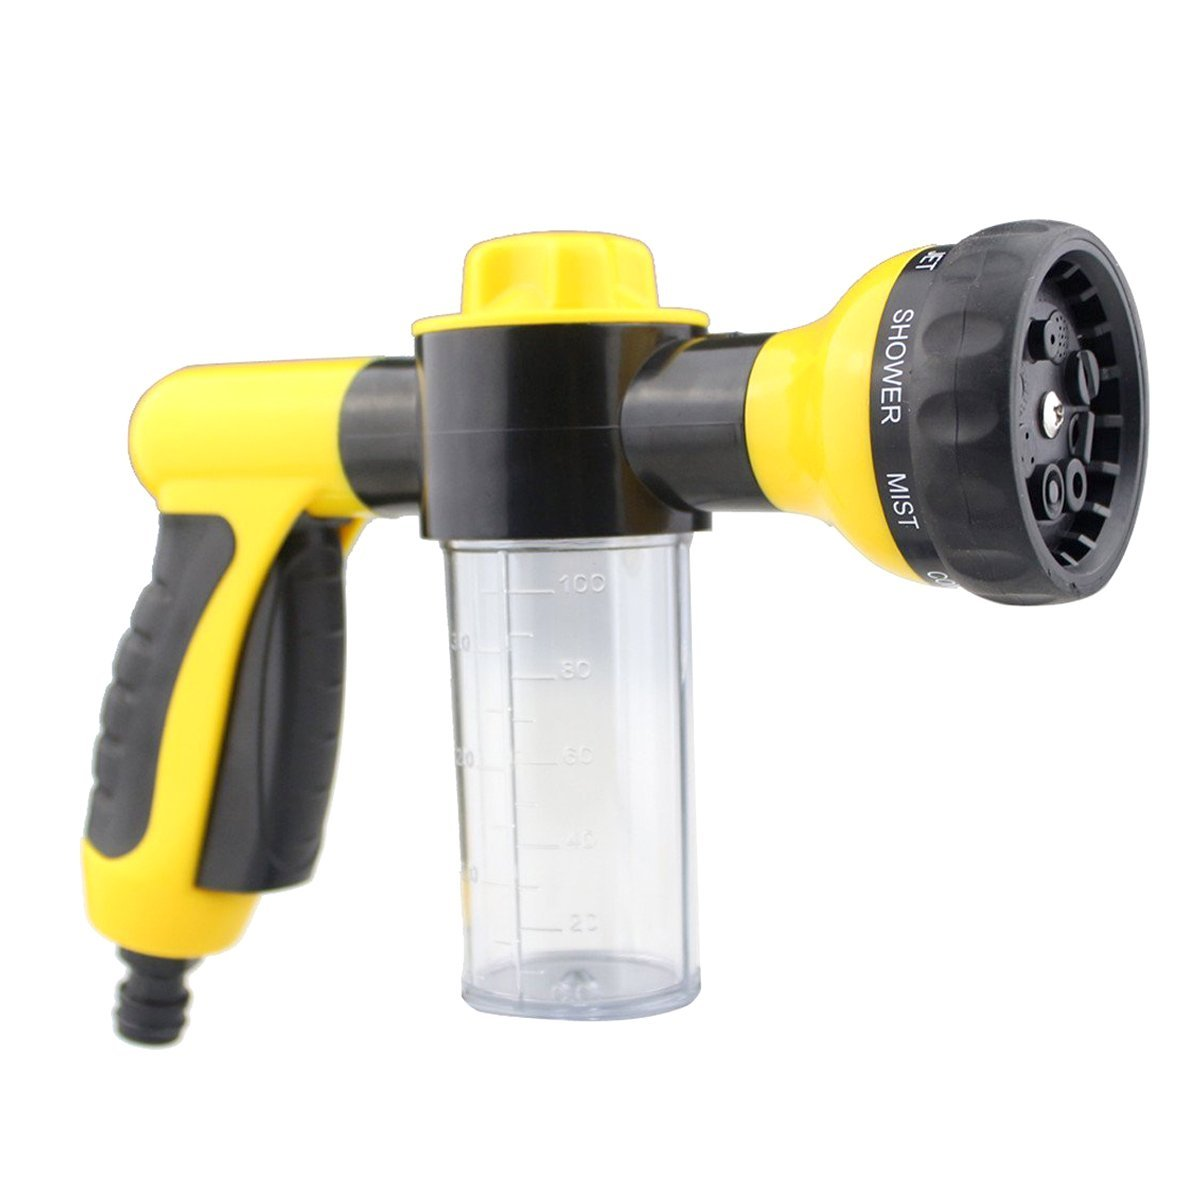 Amazon.com: Freehawk Garden Hose Nozzle/Sprayer, Car Washer Water Gun With  Car Clean Foam. Free Detachable Shut Valve And ABS Connector, 8 Adjustable  ...